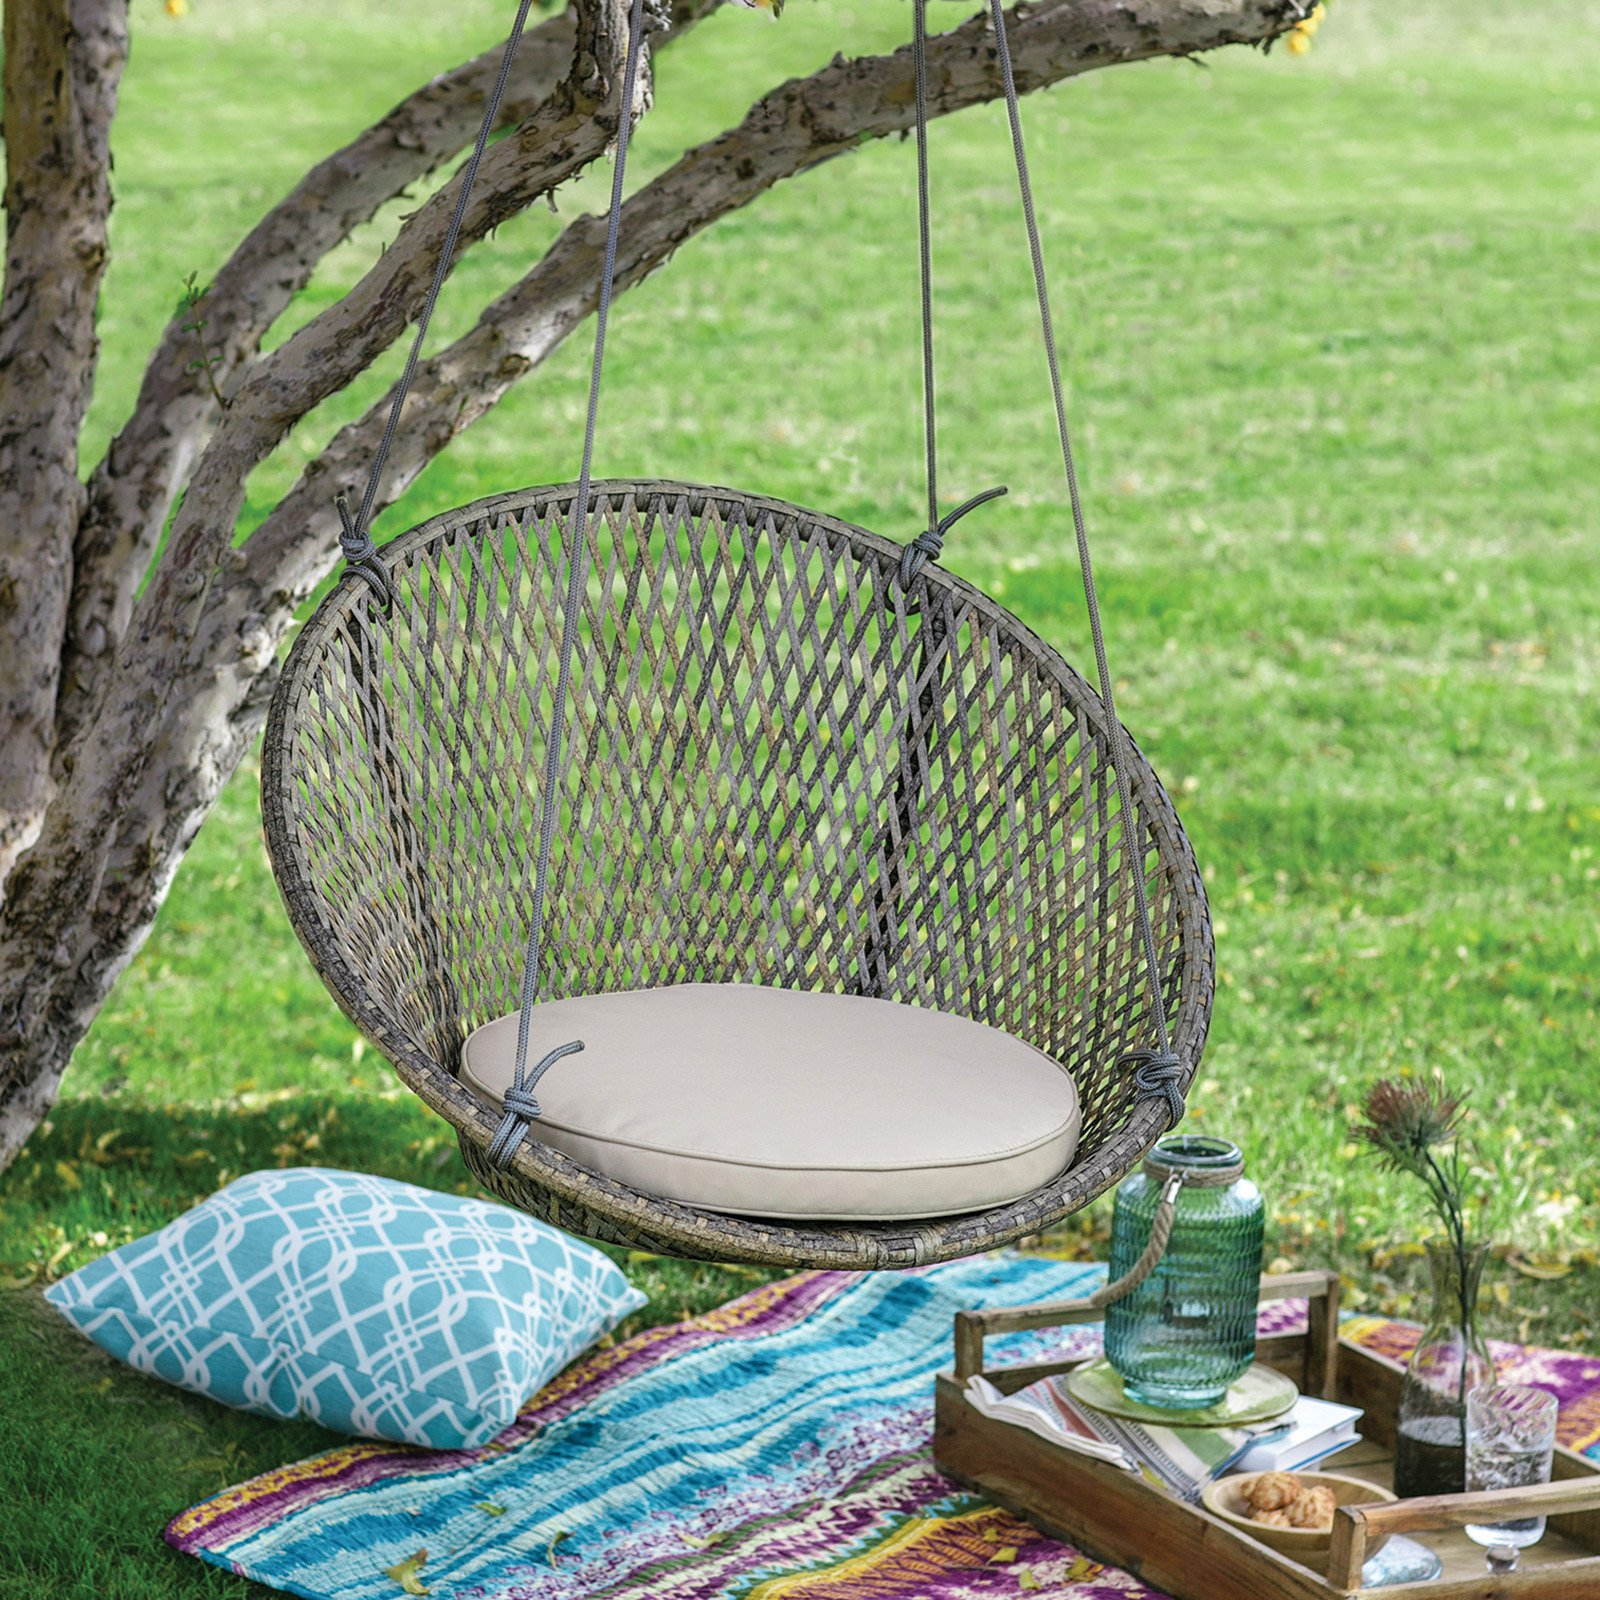 hanging chair swing kneeling design plans outdoor chairs walmart com product image belham living saria resin wicker single with seat pad